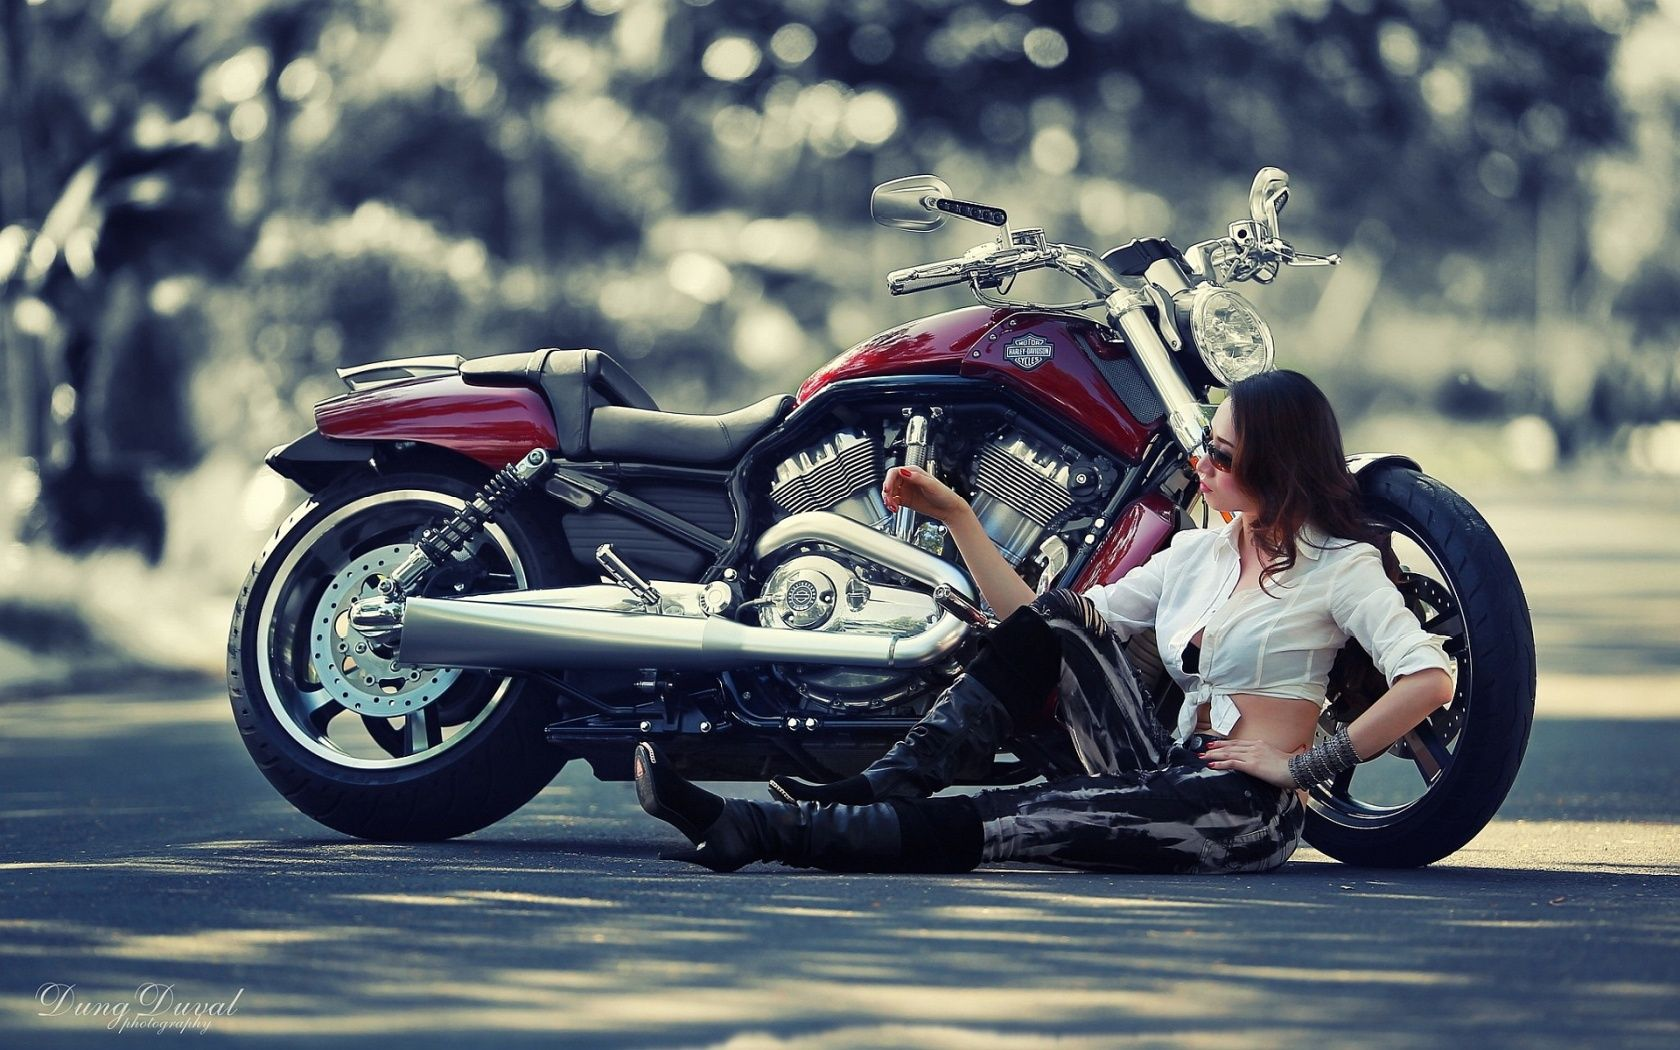 Free Motorcycle Wallpapers Screensavers Yahoo Image Search Results With Images Harley Davidson Wallpaper Harley Davidson Posters Harley Davidson Motorcycles